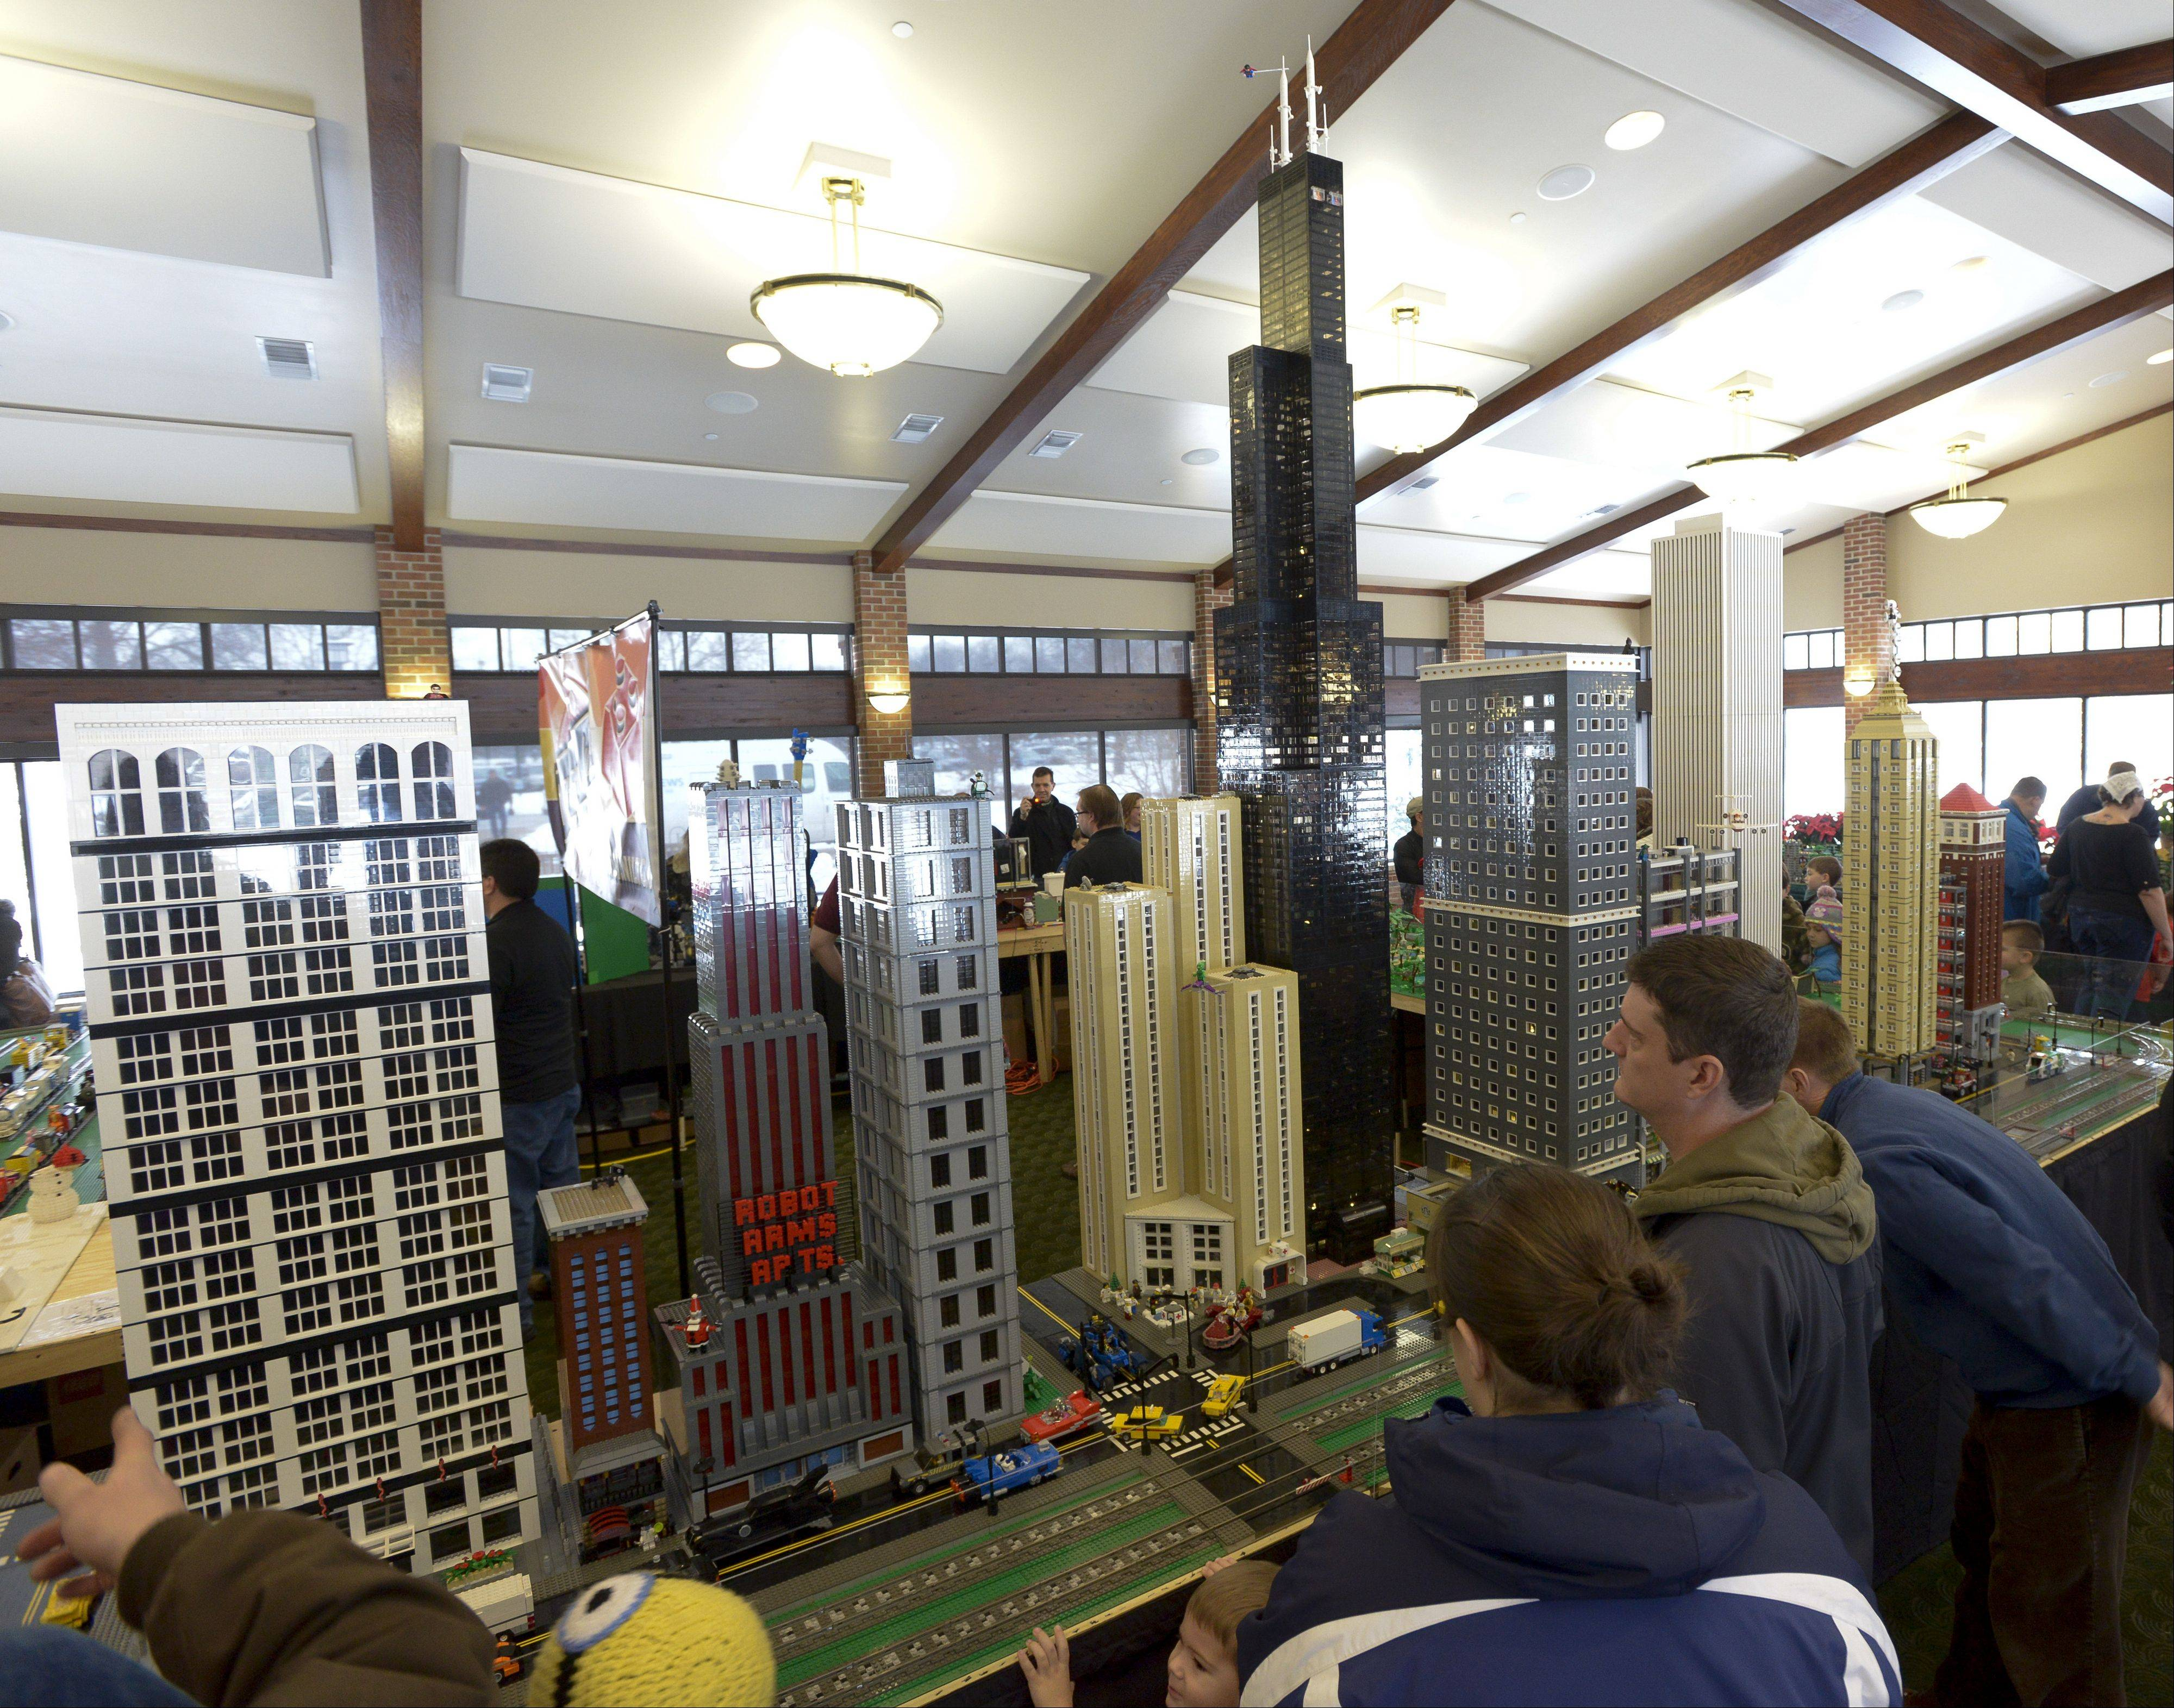 A Lego cityscape featuring the Willis Tower was on display Sunday during the Northern Illinois Lego Train Club's 12th annual Lego Train Show and Party on Sunday at Wheaton's Cantigny Park.